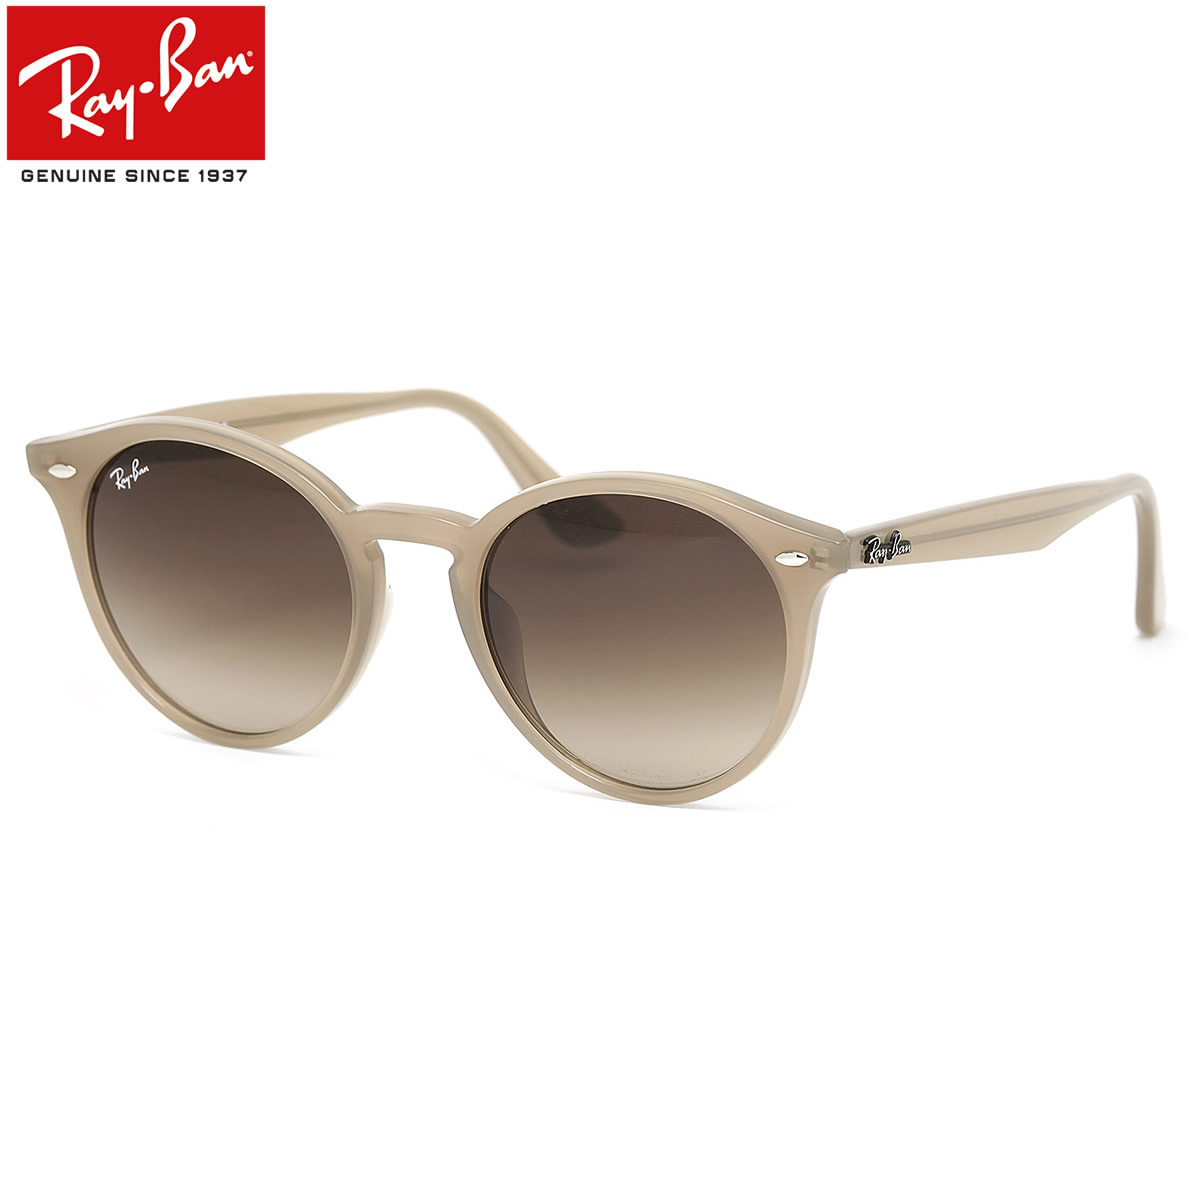 09f14a4b3e3b2 Ray-Ban sunglasses Ray-Ban RB2180F 616613 51 size RAYBAN 6166 13 ROUND  round-maru glasses full fitting men gap Dis